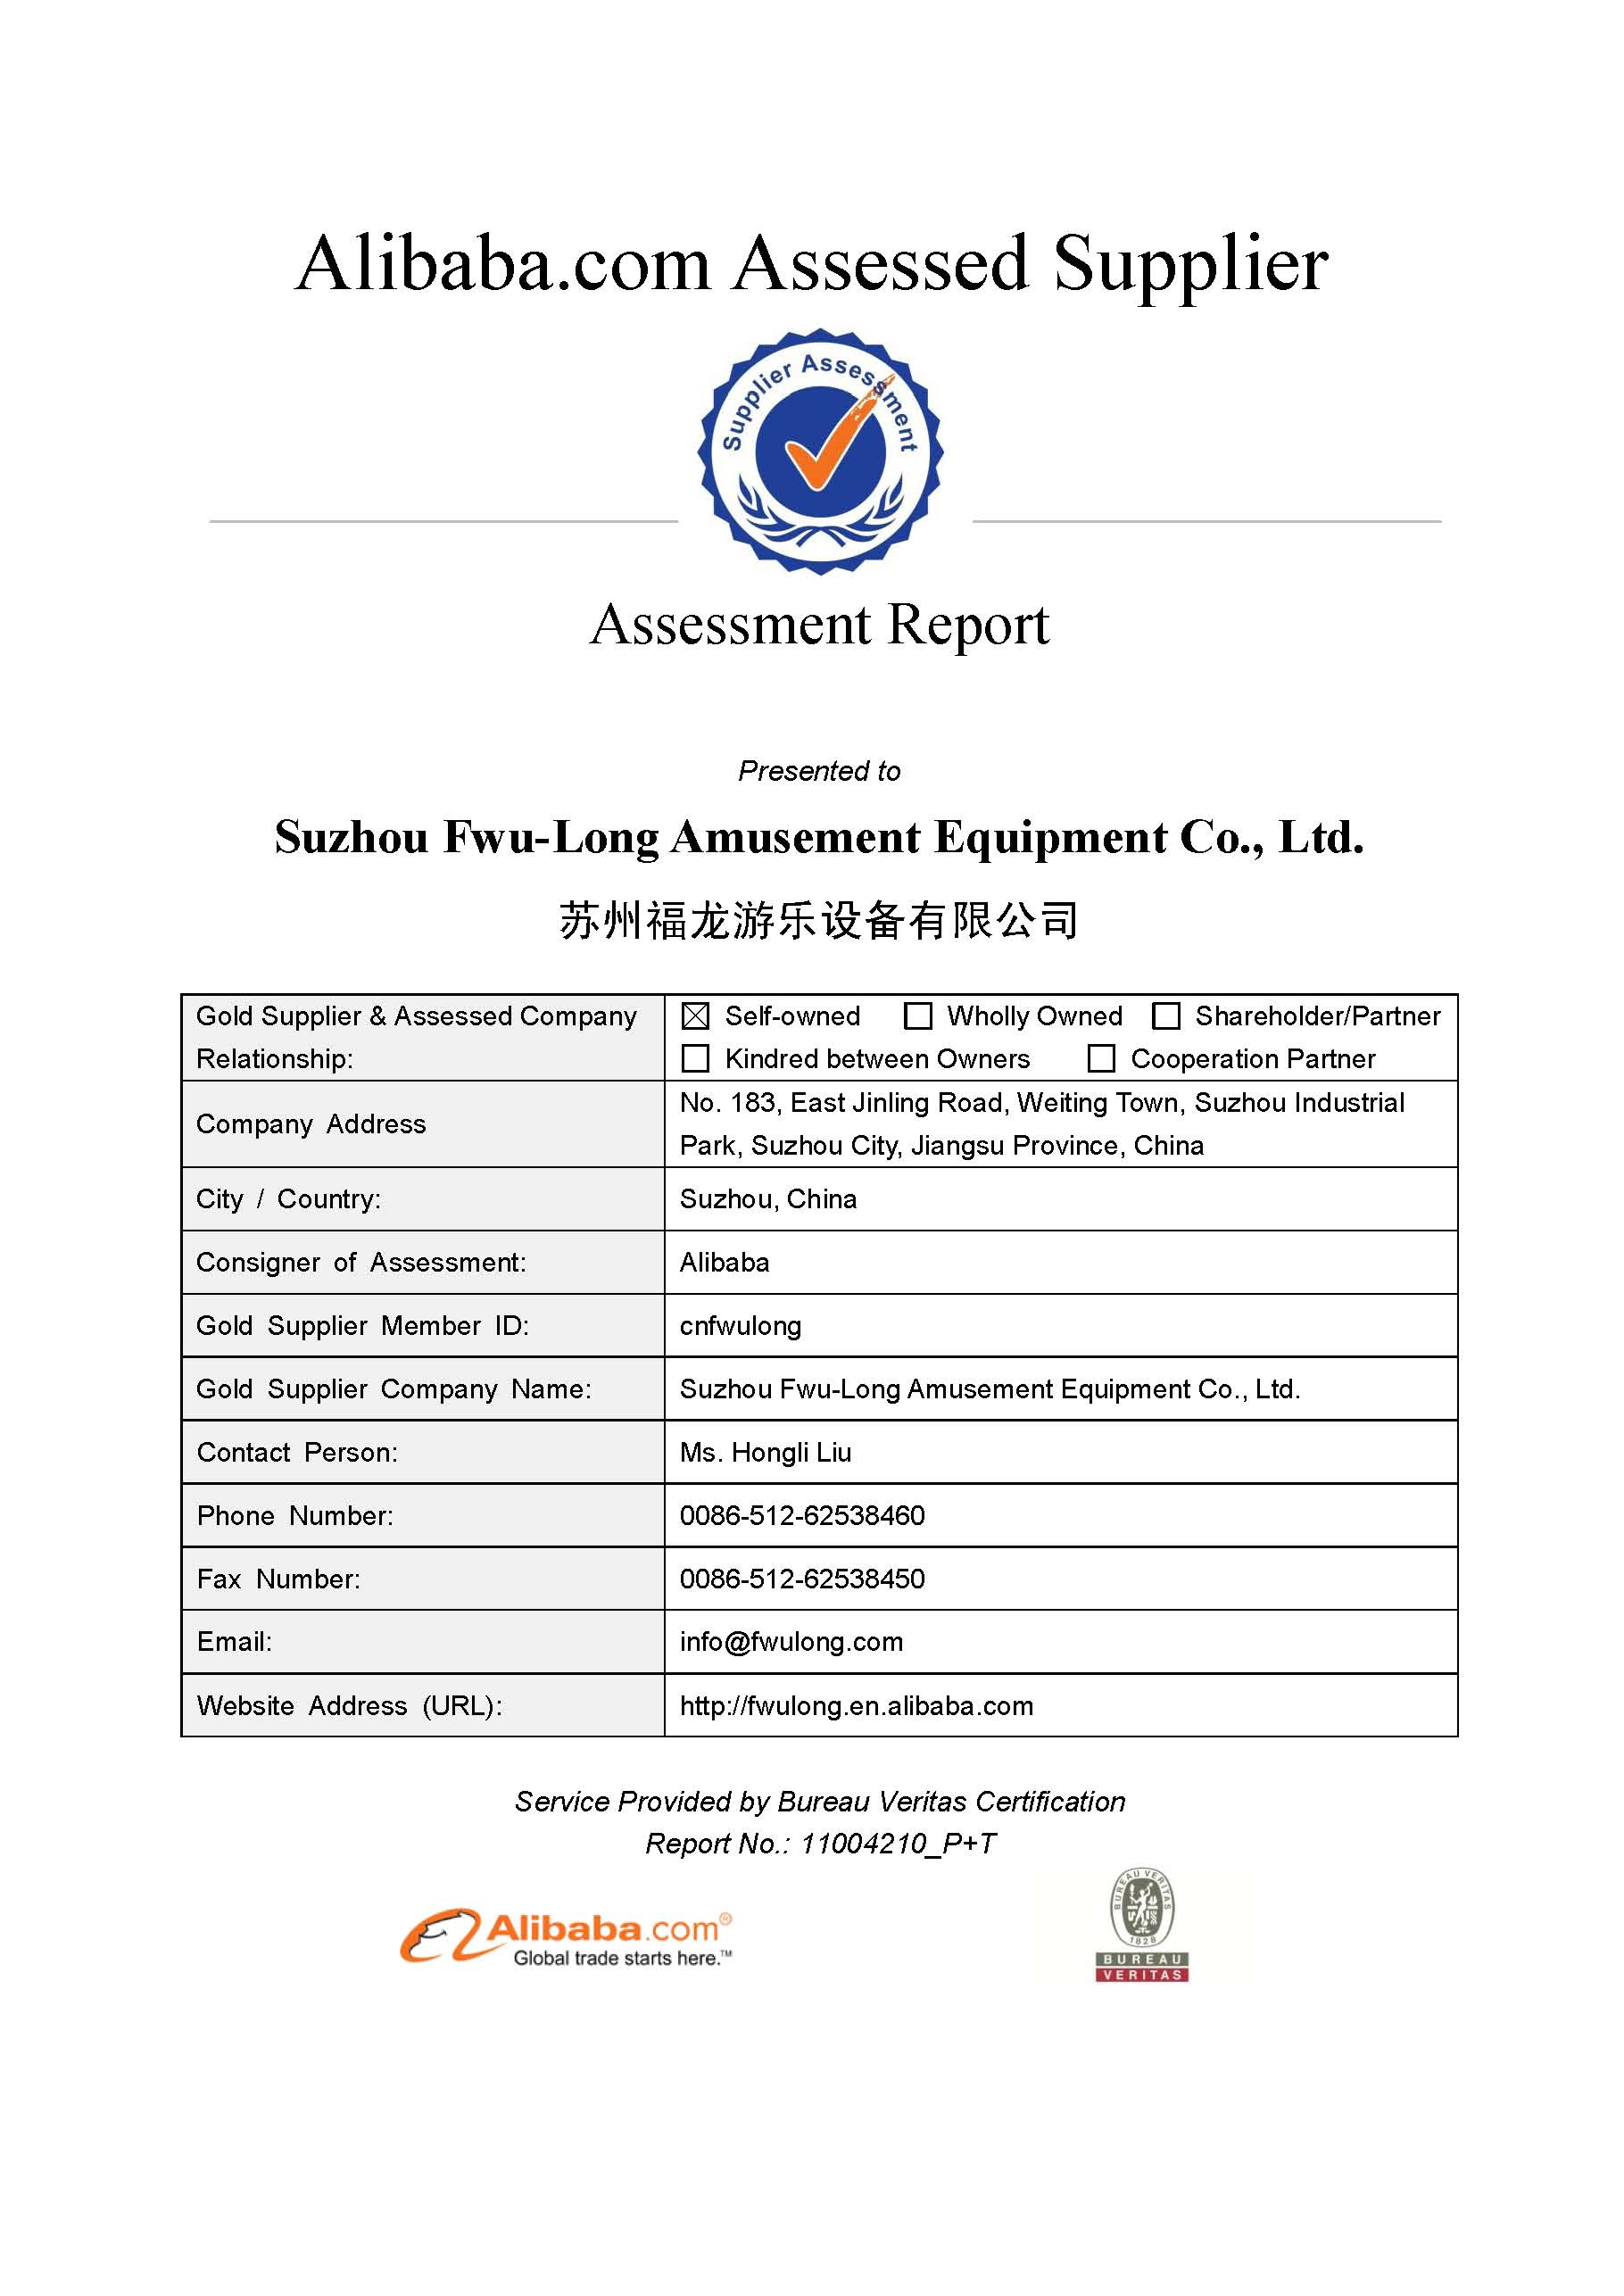 2016 Bureau Veritas Supplier Assessment Report